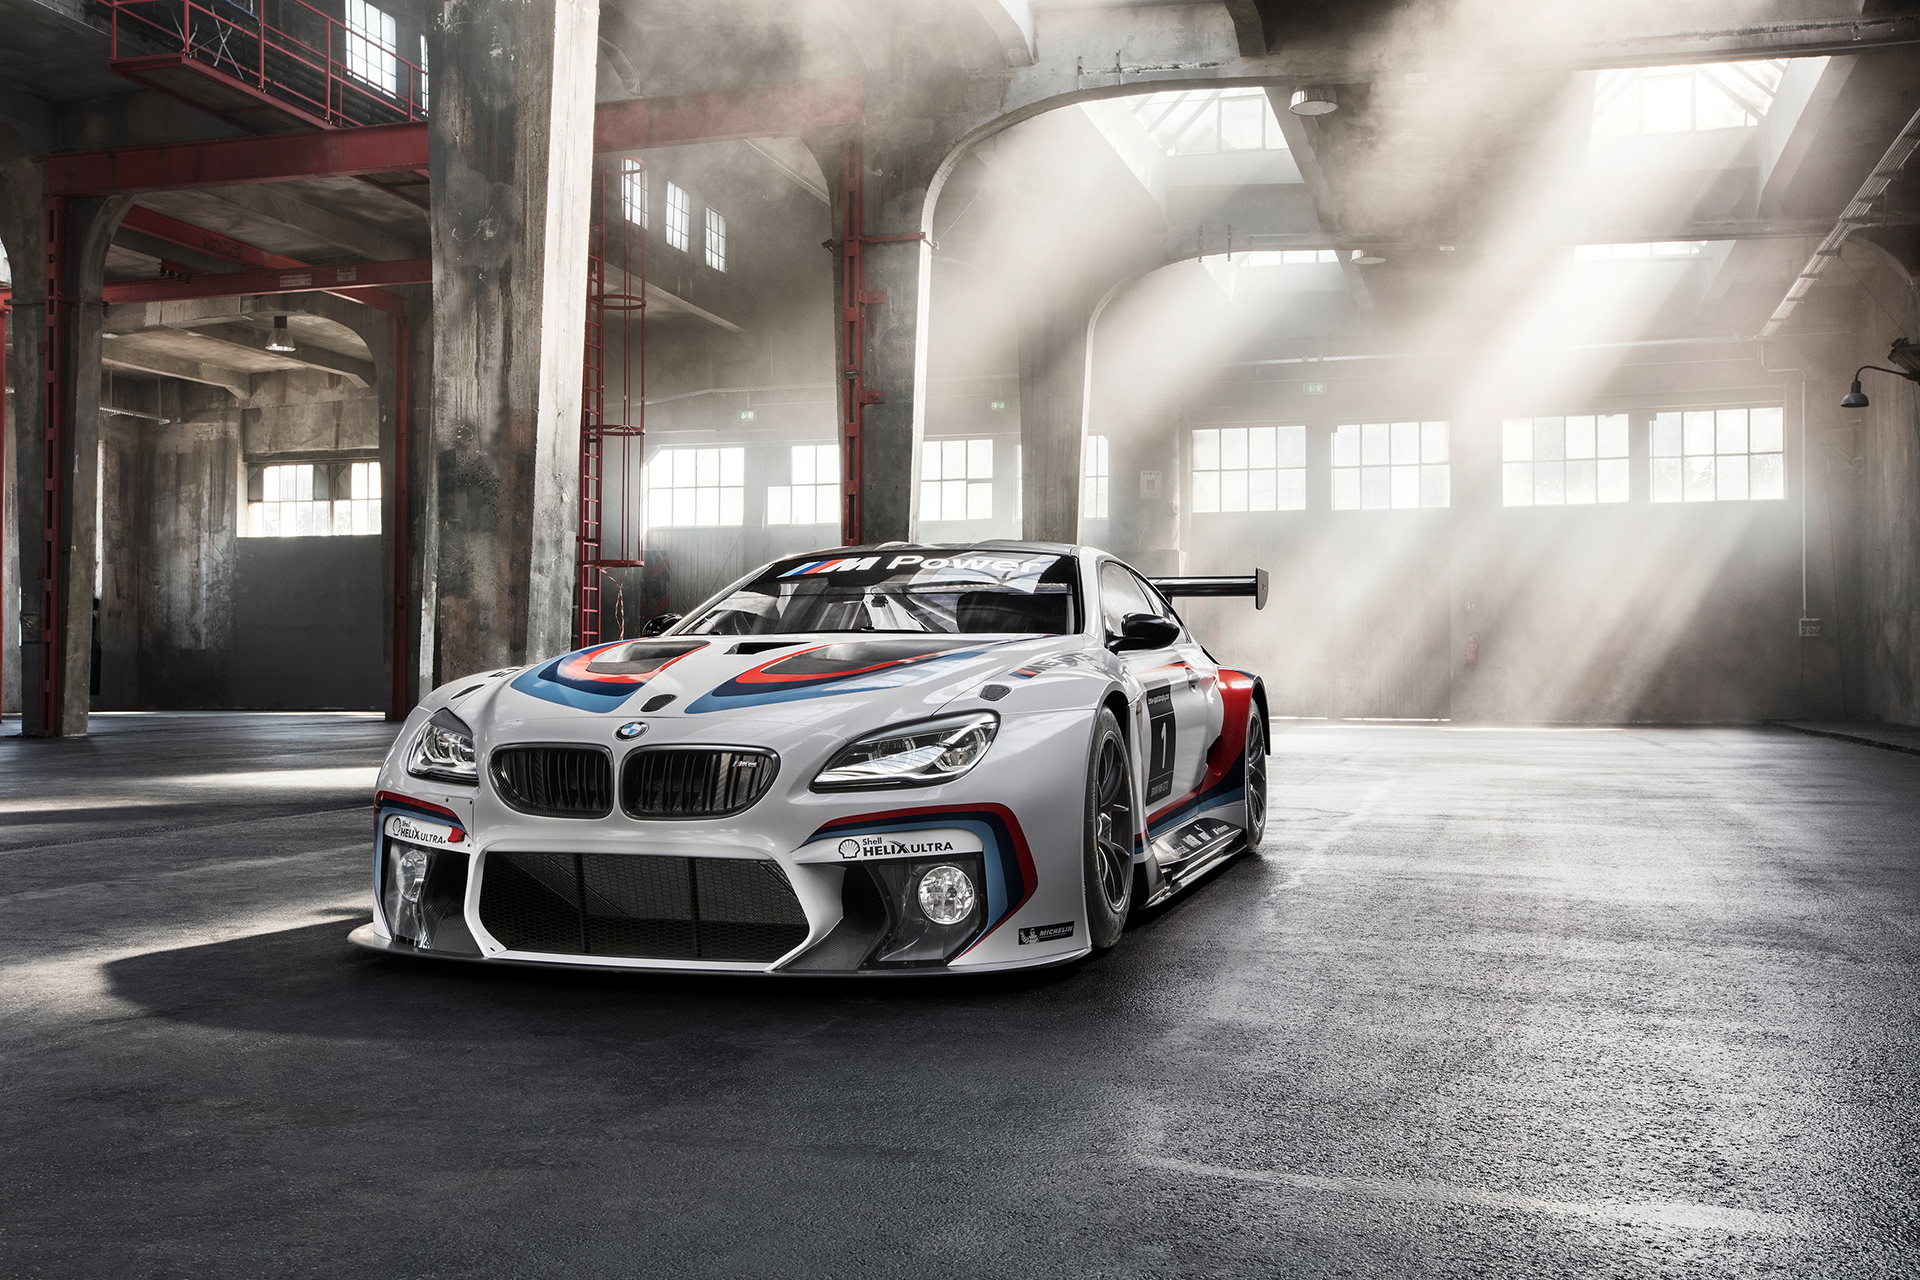 BMW M6 GT3 - 2016 - front side-face / profil avant